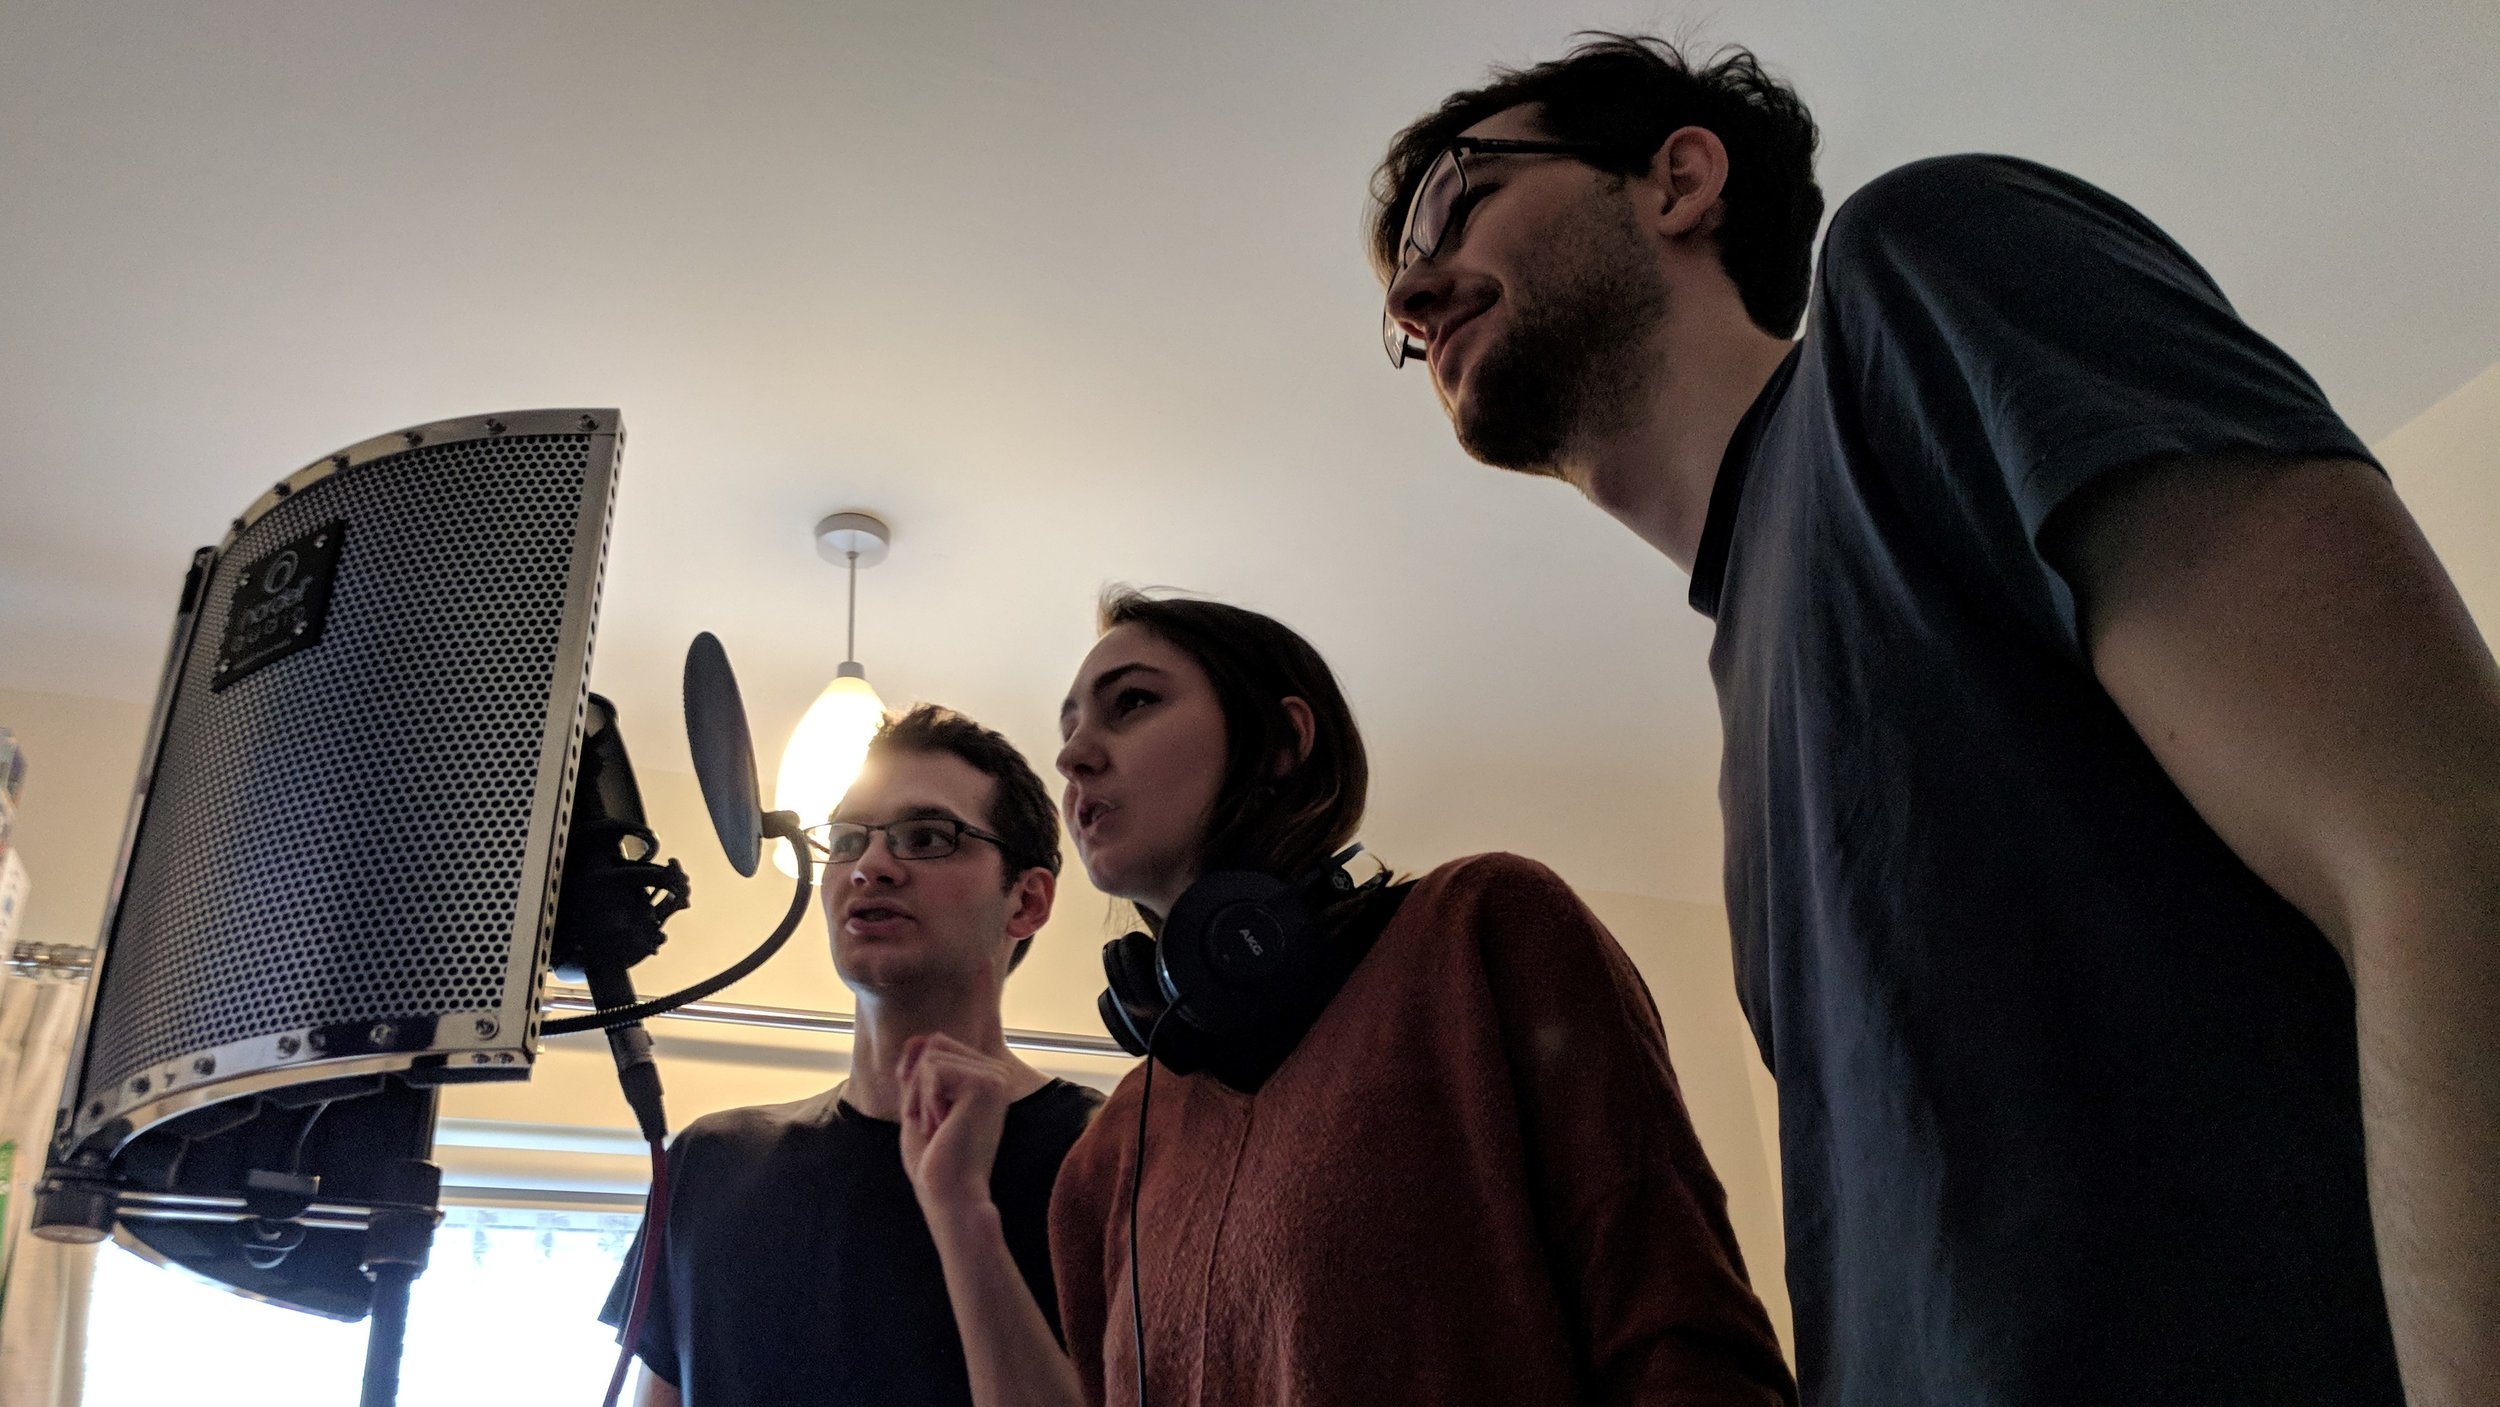 Andrej, Lola and Stefan Panić during a voice acting session